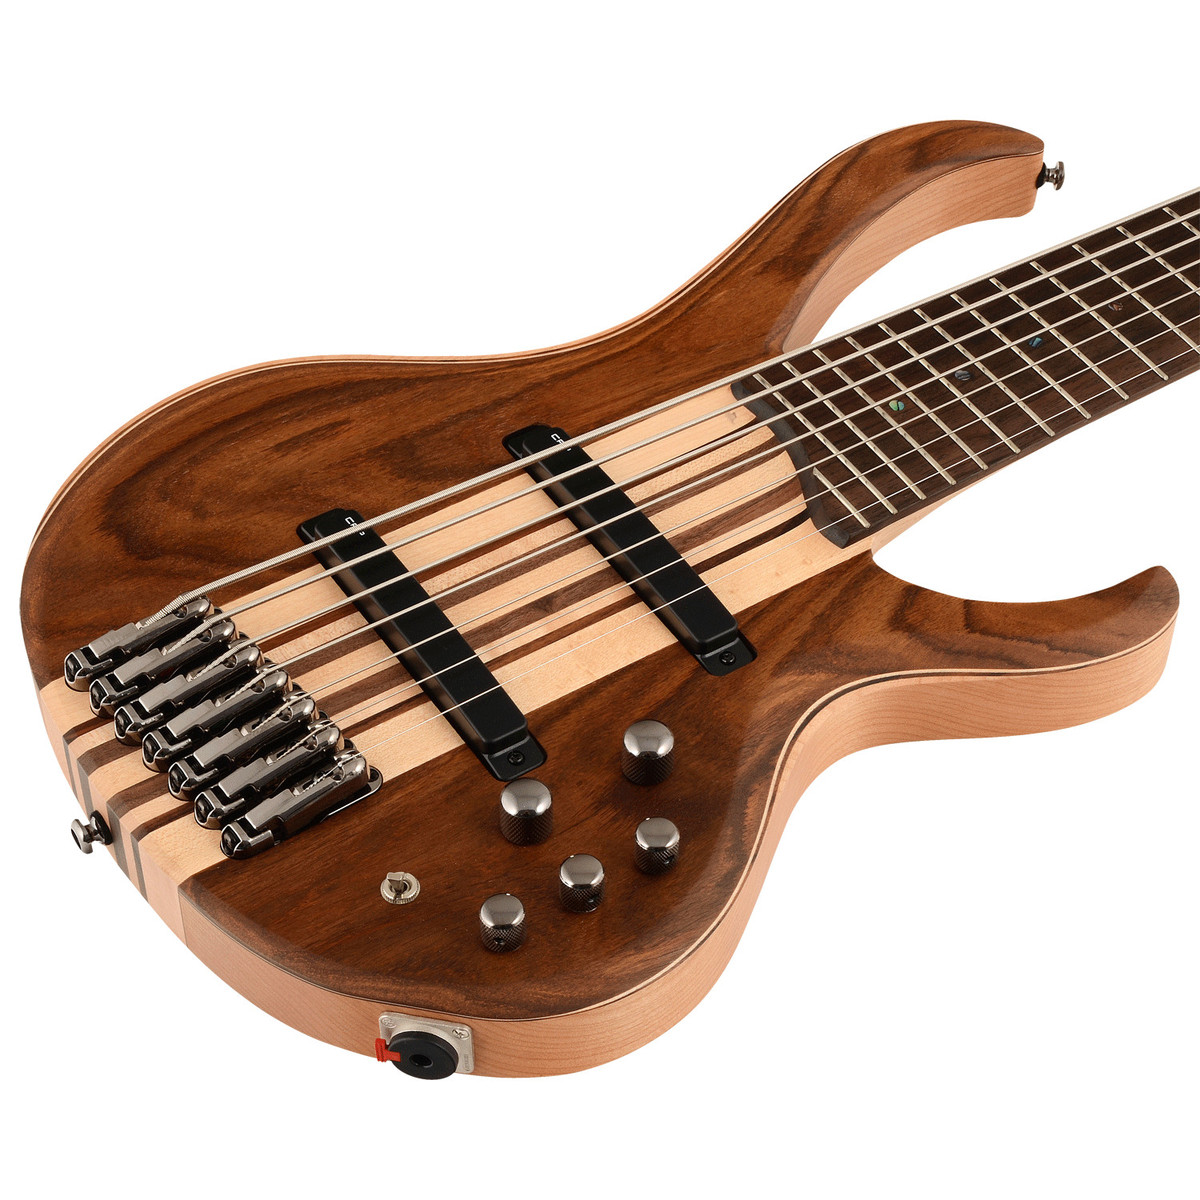 Ibanez 7 String Neck : ibanez btb7 7 string thru neck bass guitar natural flat at ~ Vivirlamusica.com Haus und Dekorationen